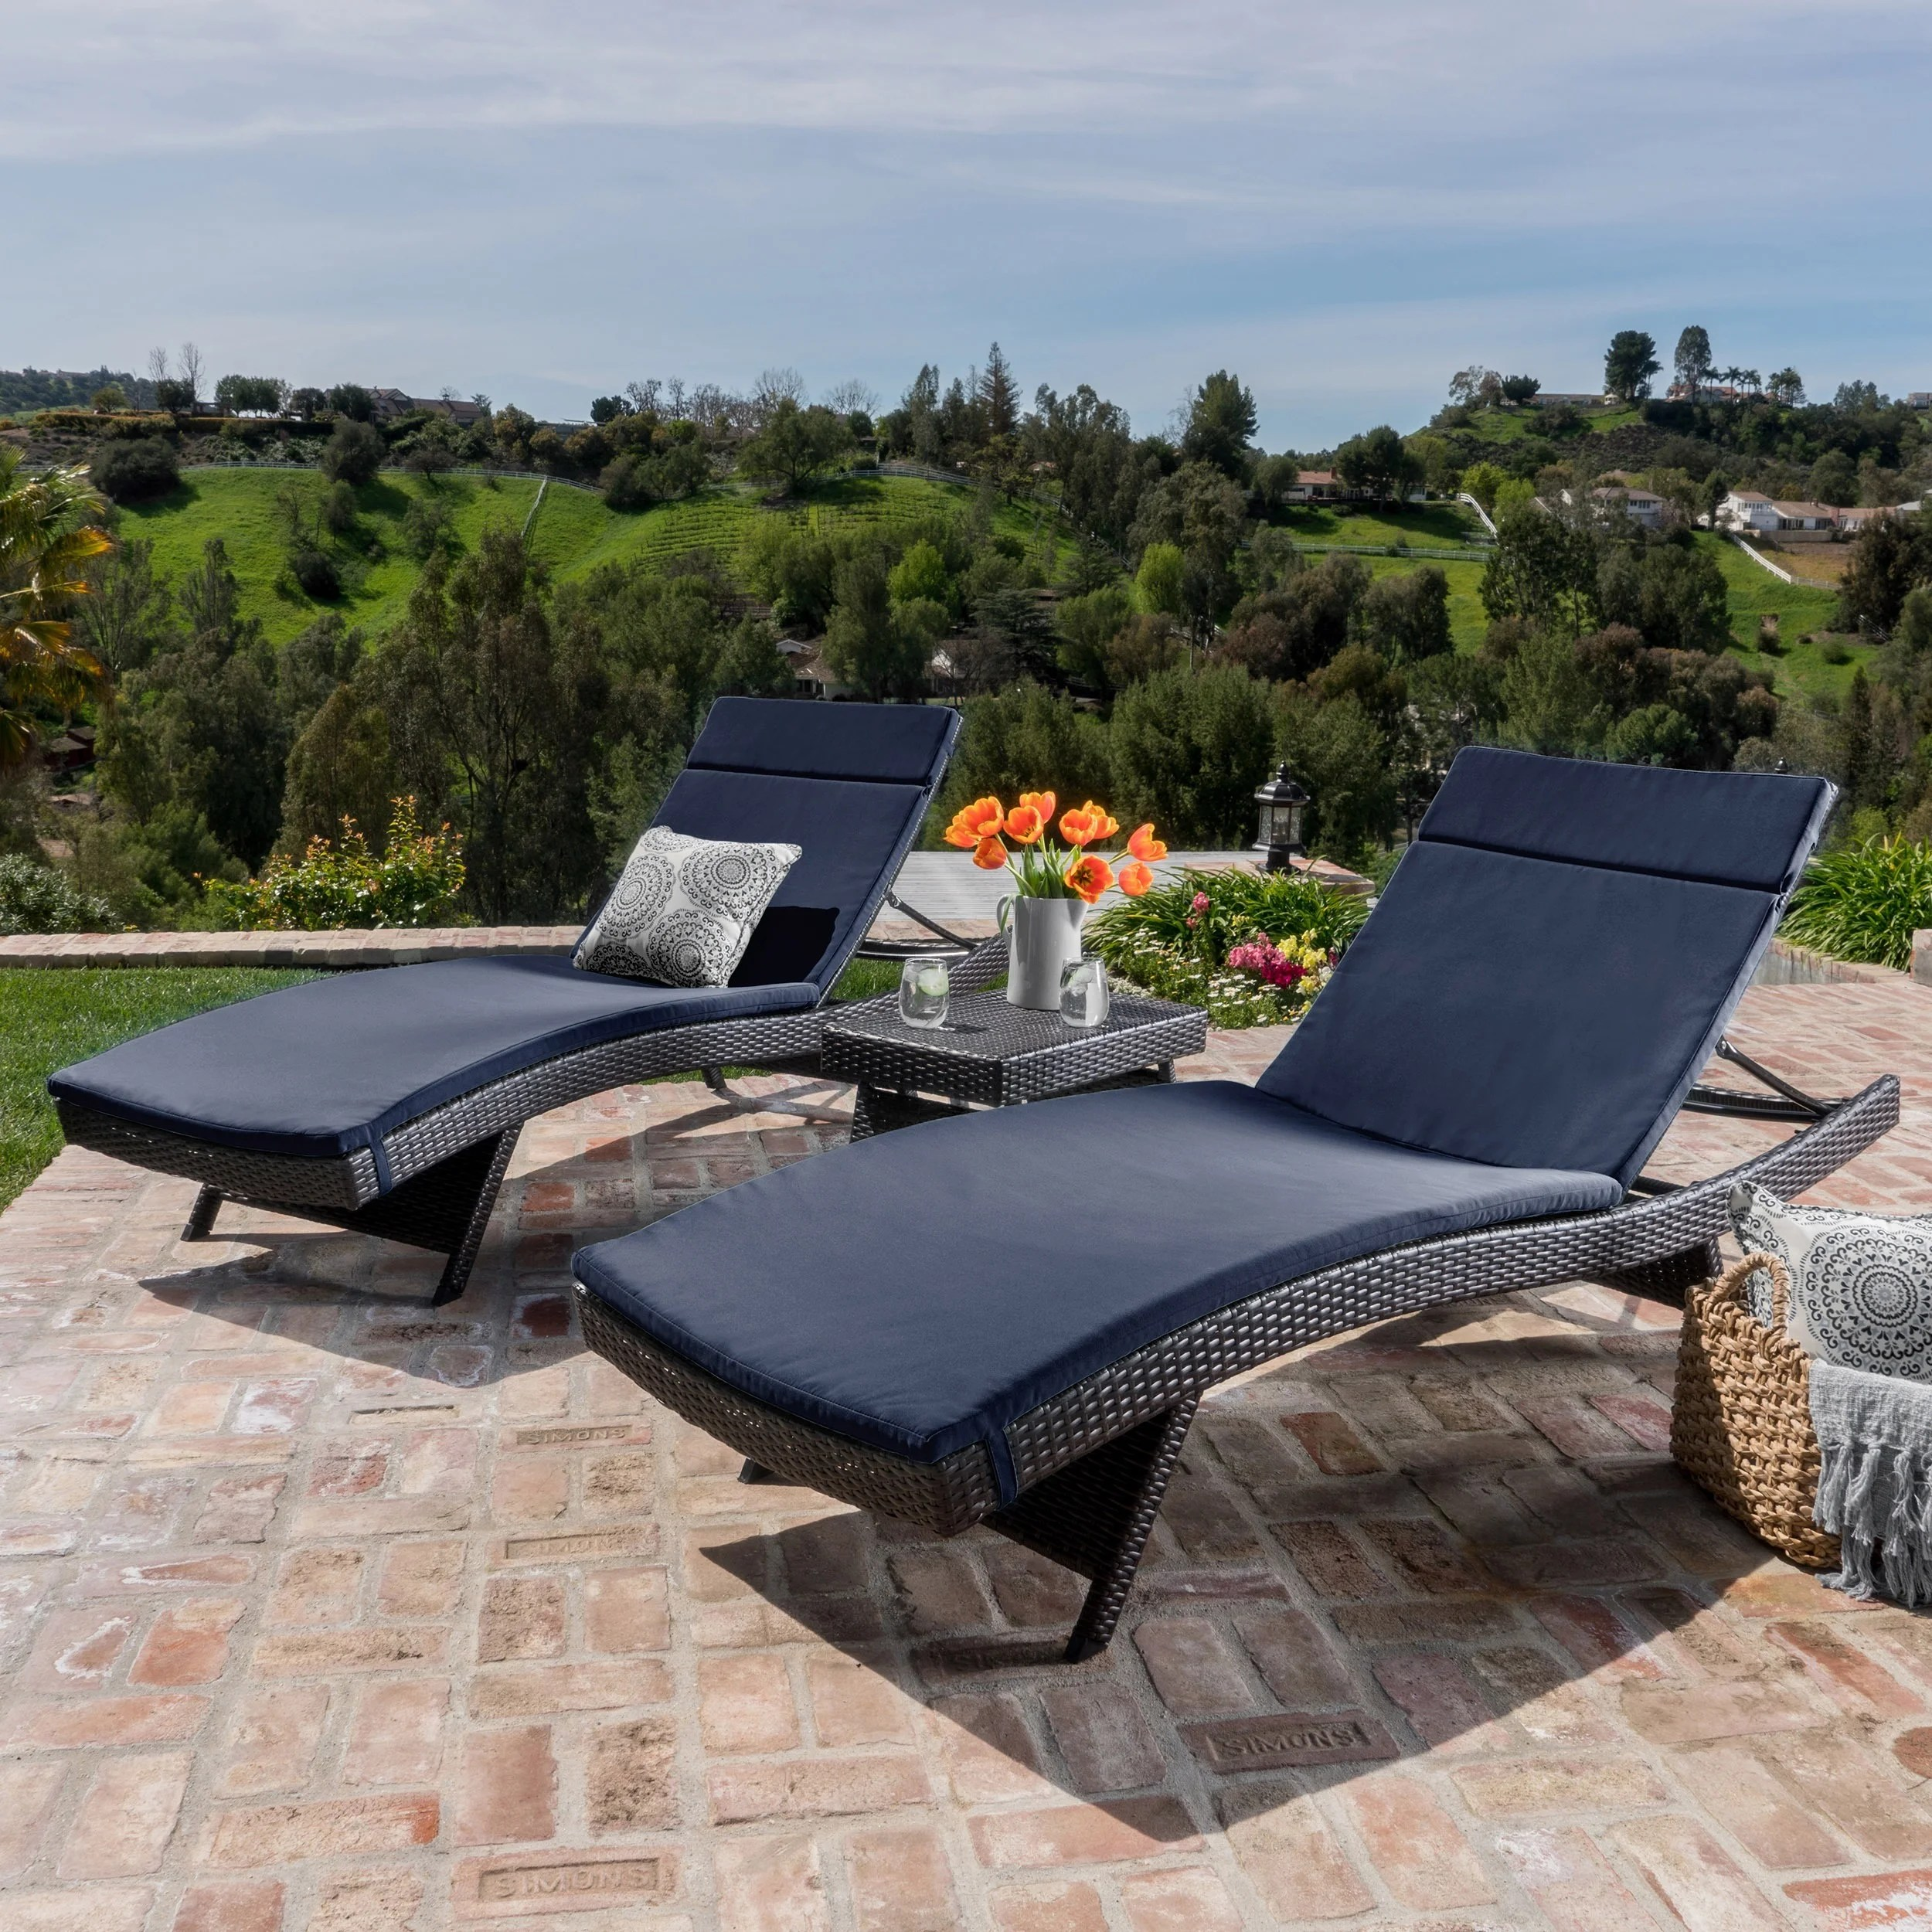 Outdoor Patio Lounge Chairs Shop Luana Outdoor 3 Piece Wicker Adjustable Chaise Lounge